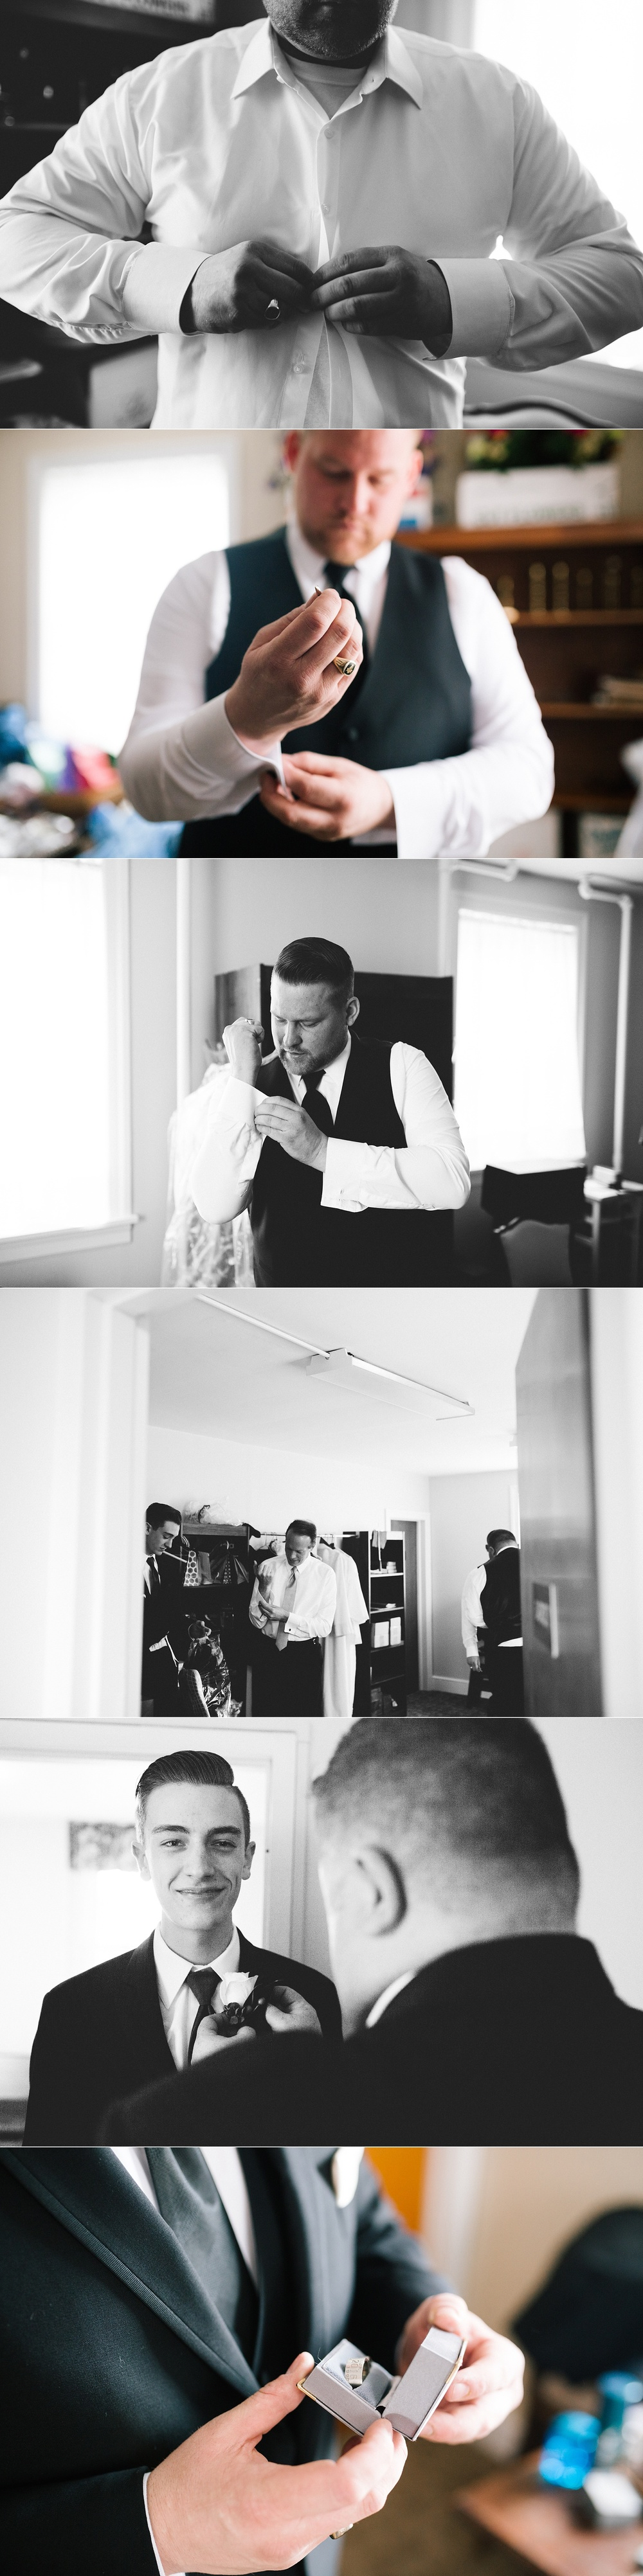 dwayne lydia delaware wedding philadelphia baltimore washingtion dc wedding photographer-4